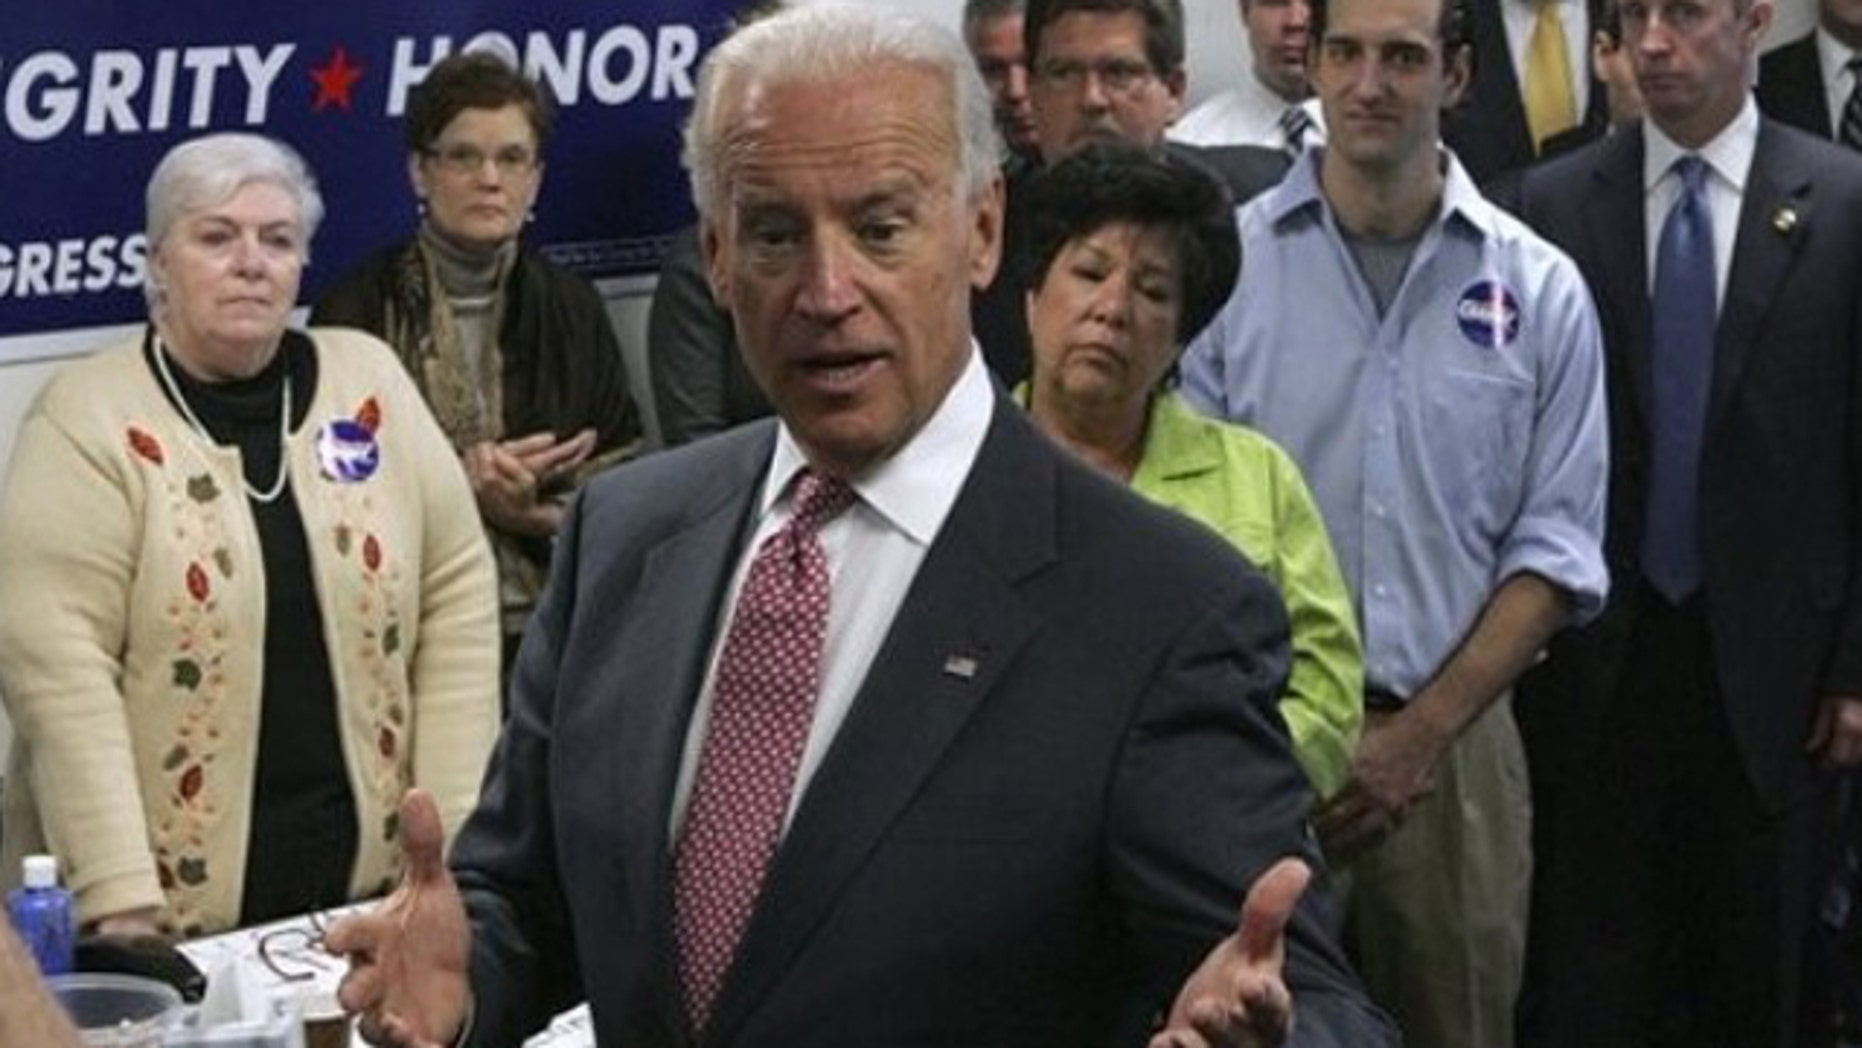 Vice President Joe Biden addresses volunteers and supporters at U.S. Rep. Chris Carney's Dickson City, Pa. campaign office on Monday, Oct. 11, 2010.  (AP Photo/Scranton Times & Tribune, Michael J. Mullen) WILKES BARRE TIMES-LEADER OUT; MANDATORY CREDIT